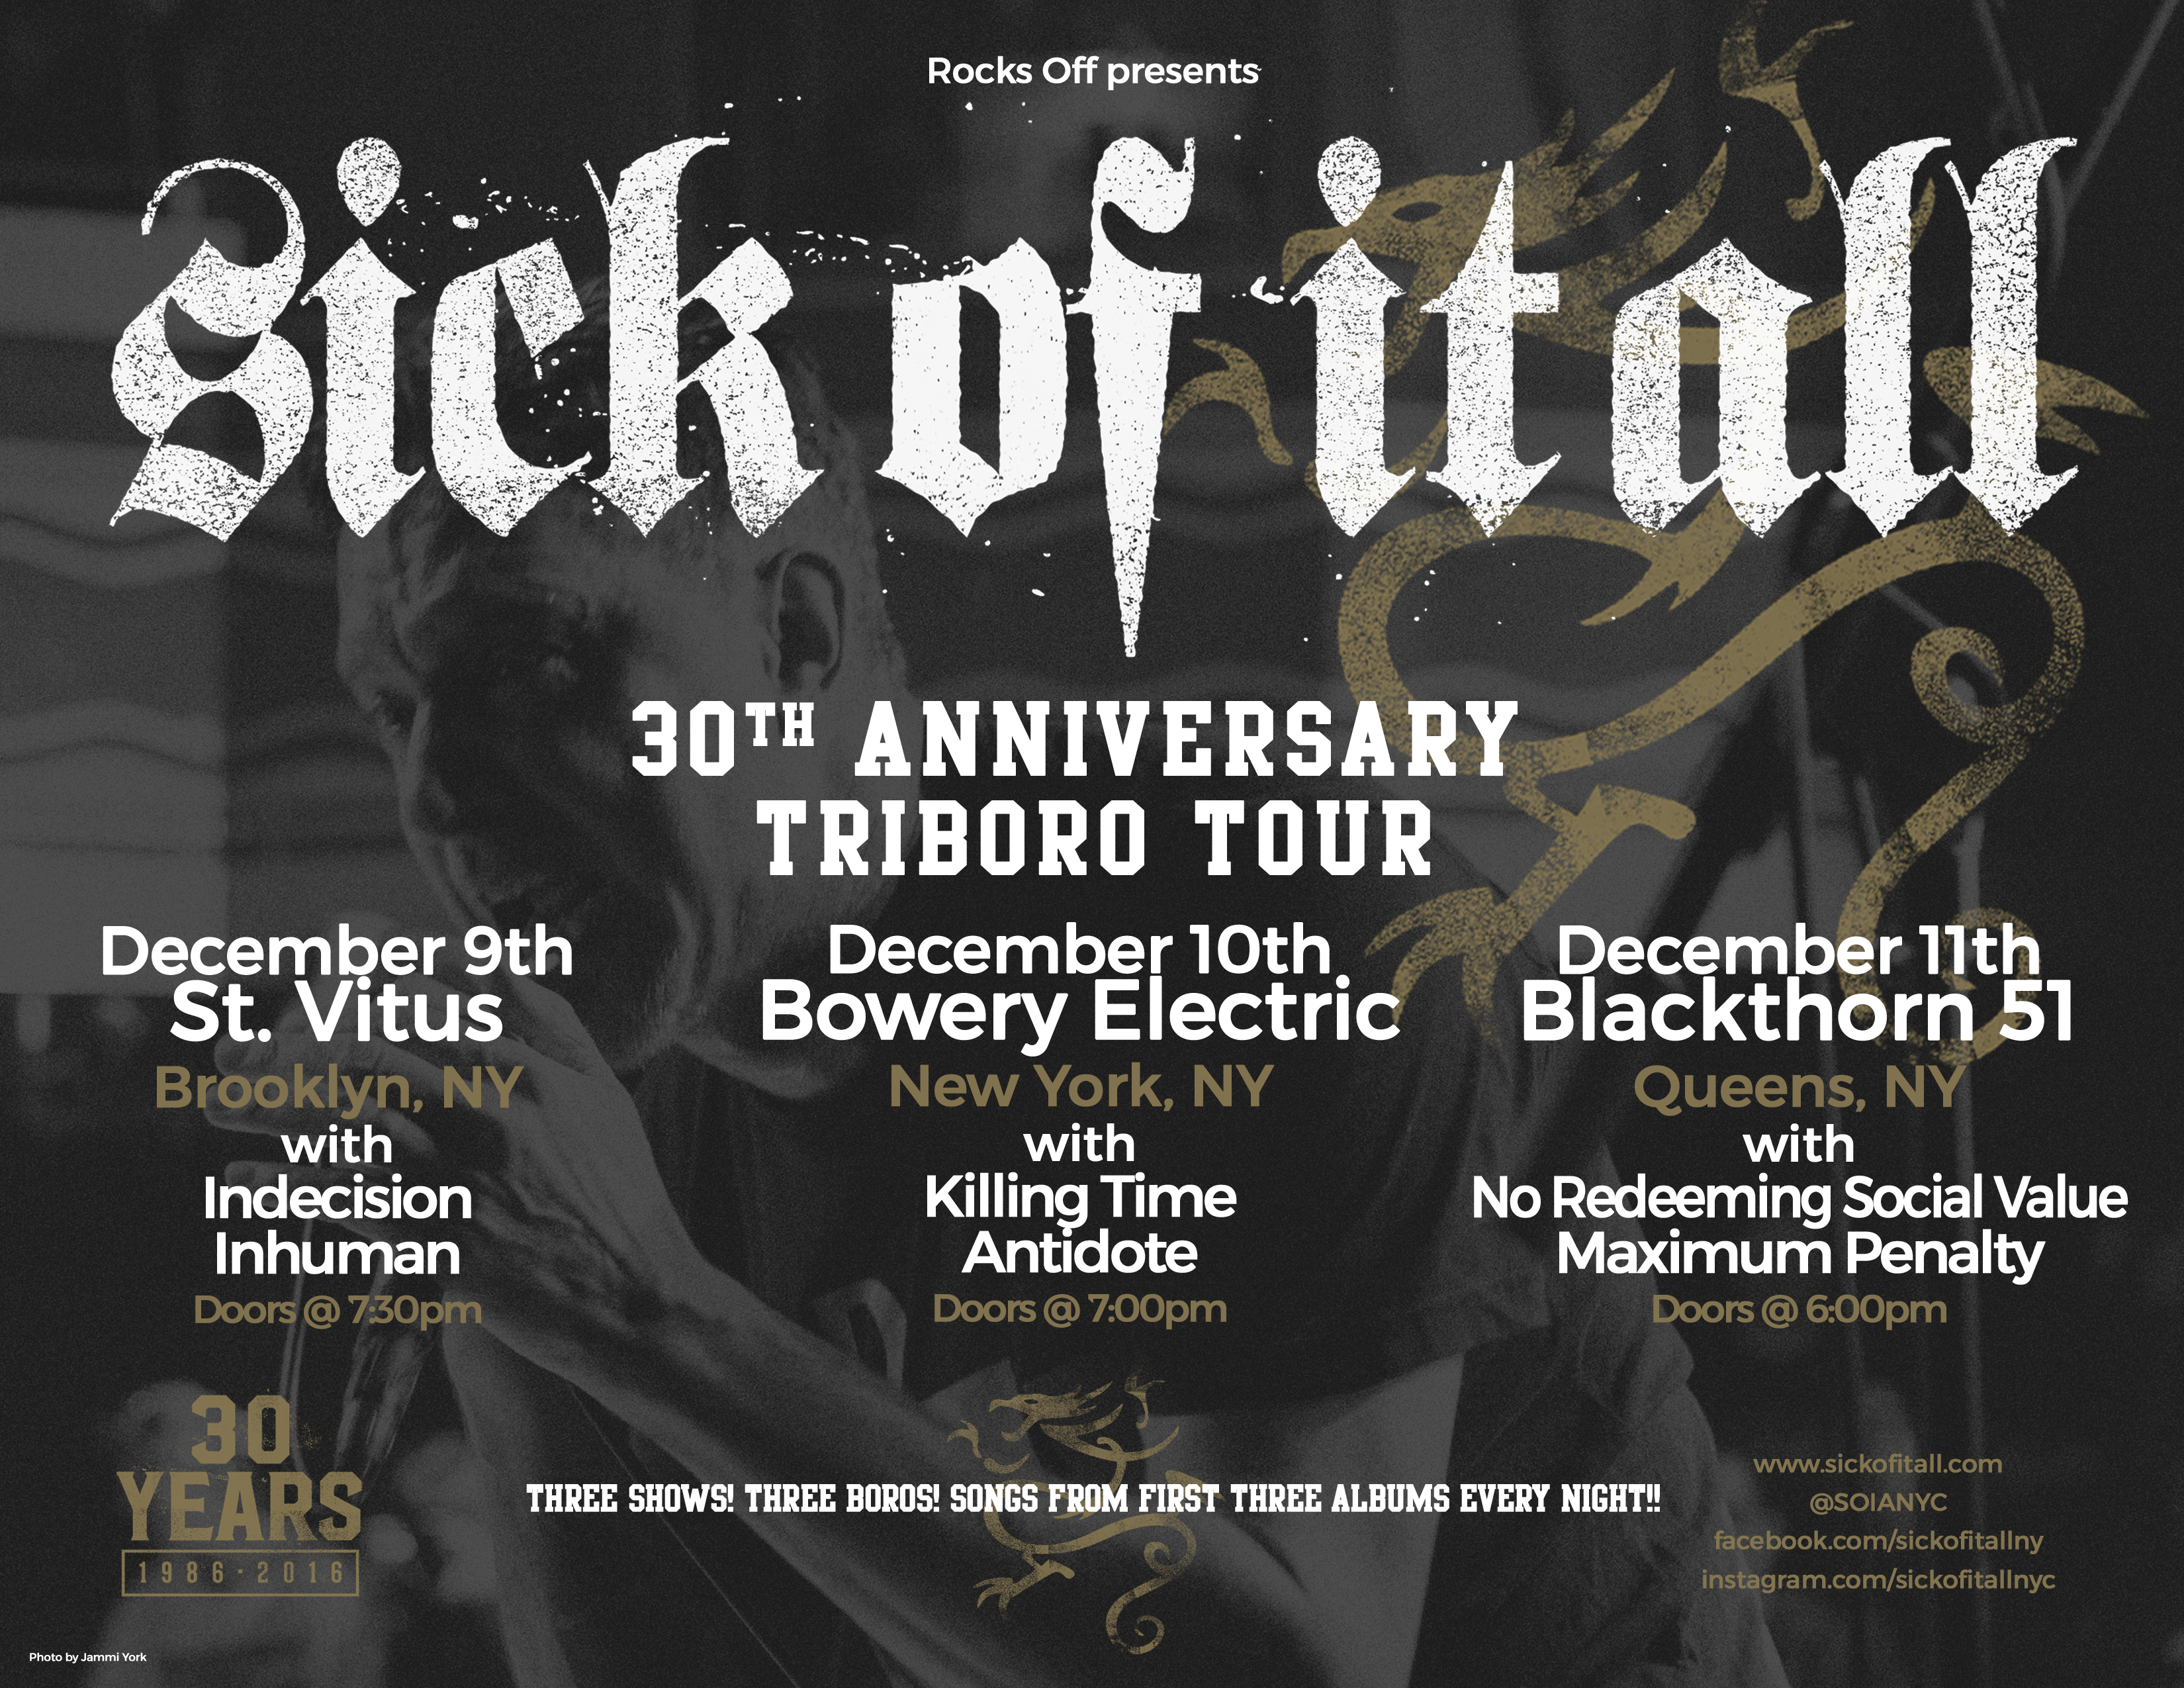 30th Anniversary Triboro Tour